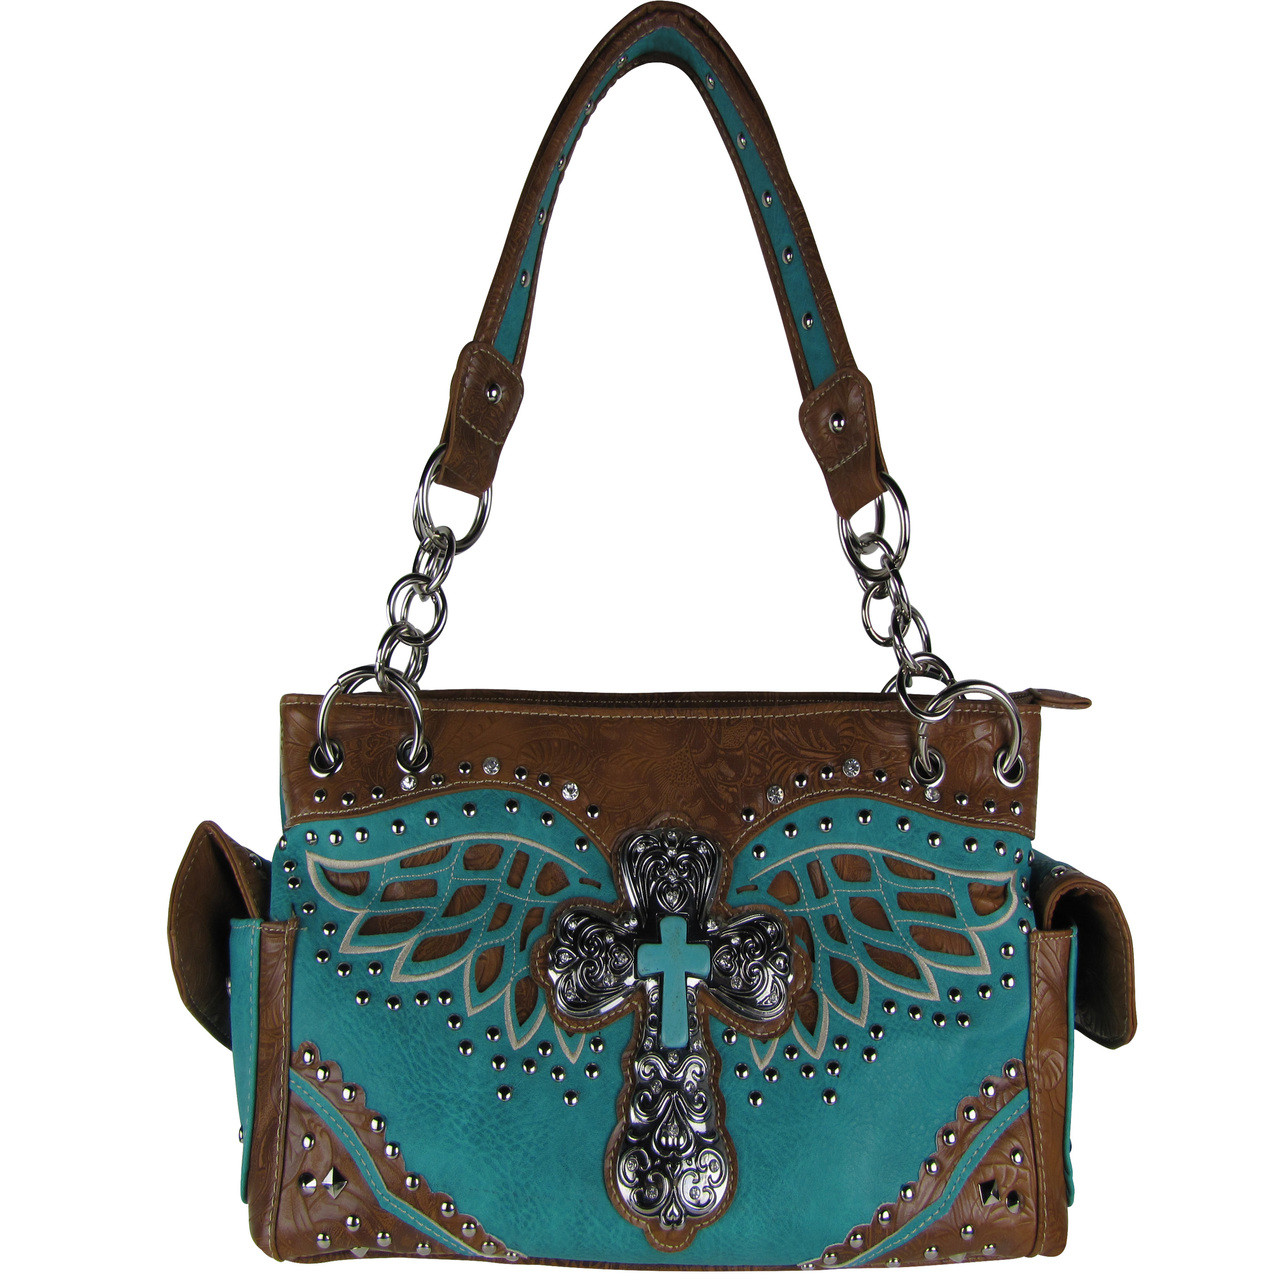 TURQUOISE WESTERN CROSS WITH WINGS LOOK SHOULDER HANDBAG HB1-52LCR-2TRQ